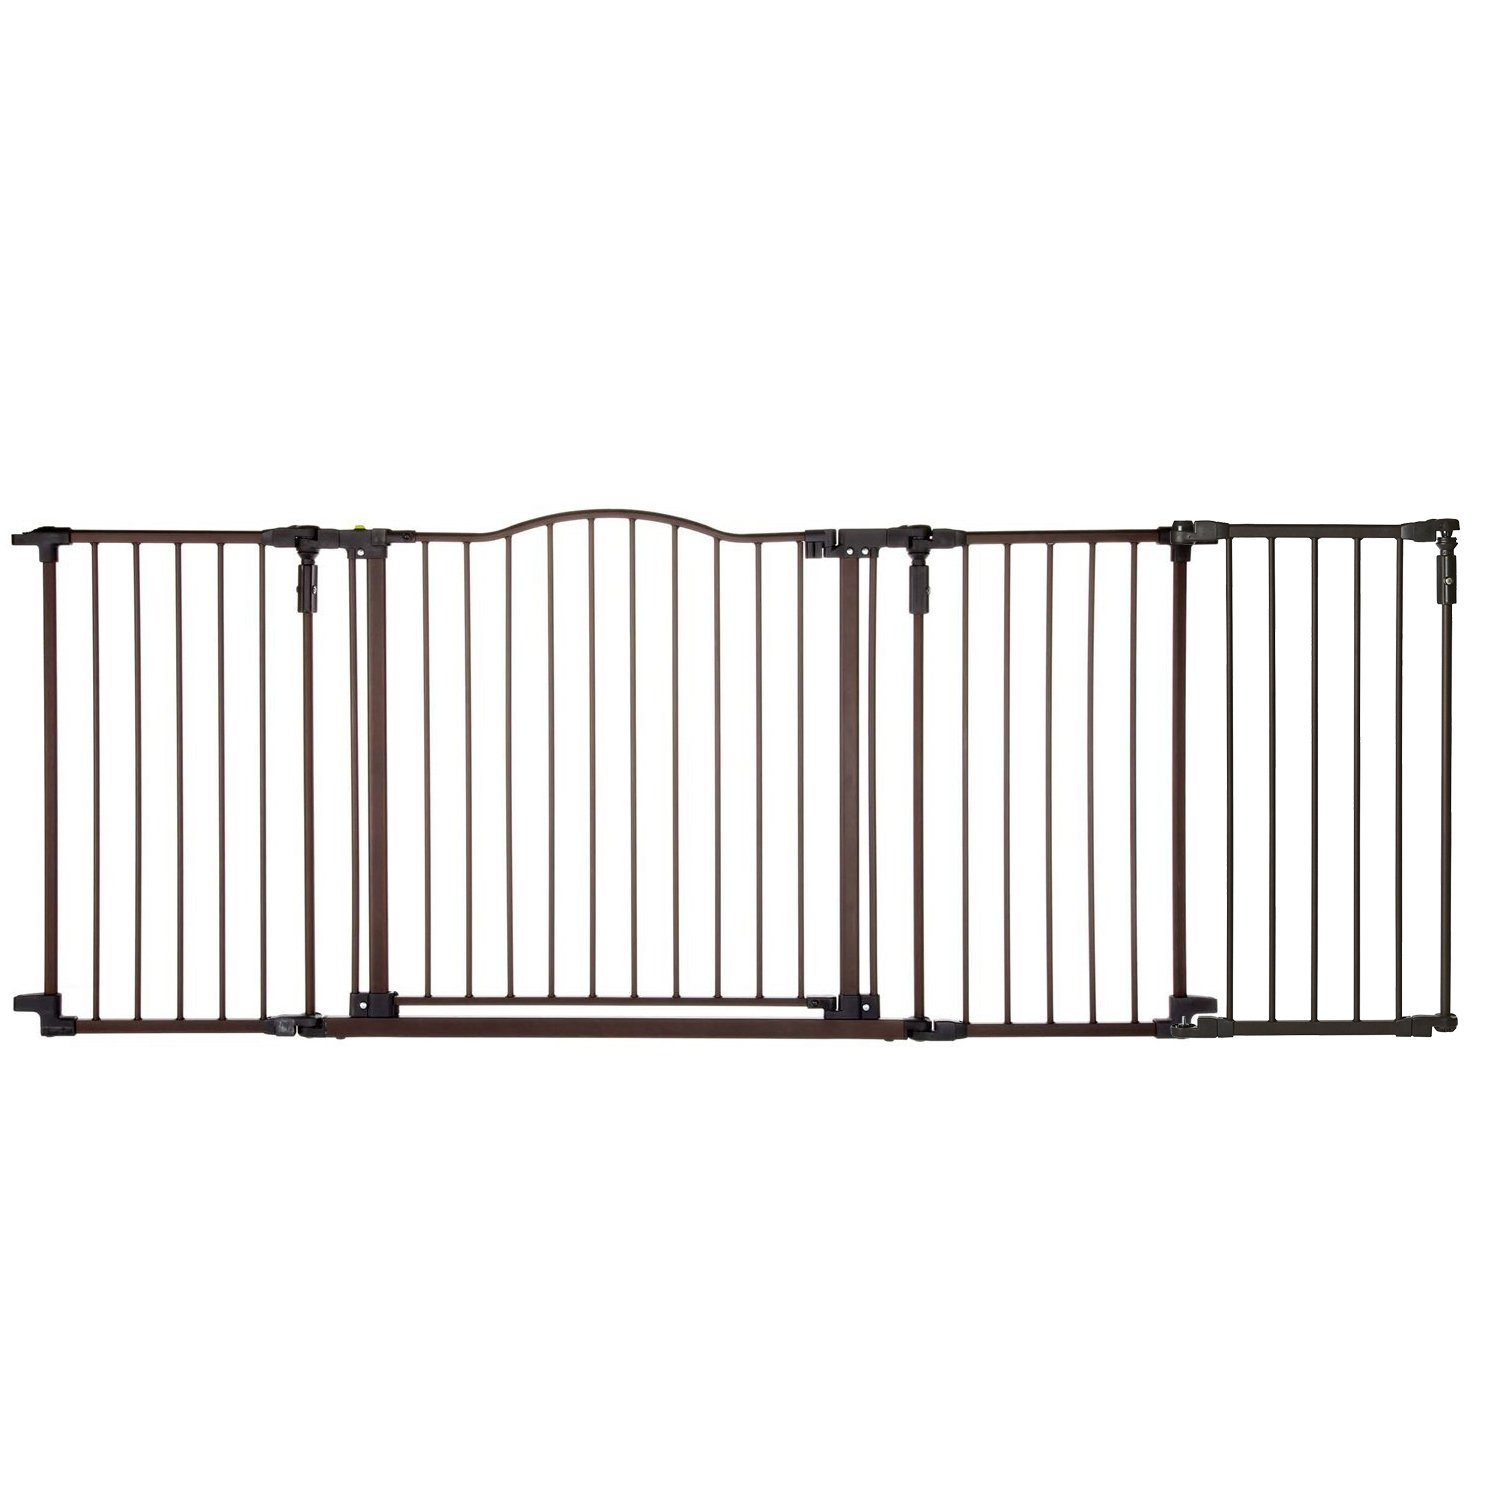 North States Deluxe Decor 38-71'' Wide Baby and Pet Metal Gate + 15'' Extension by North States